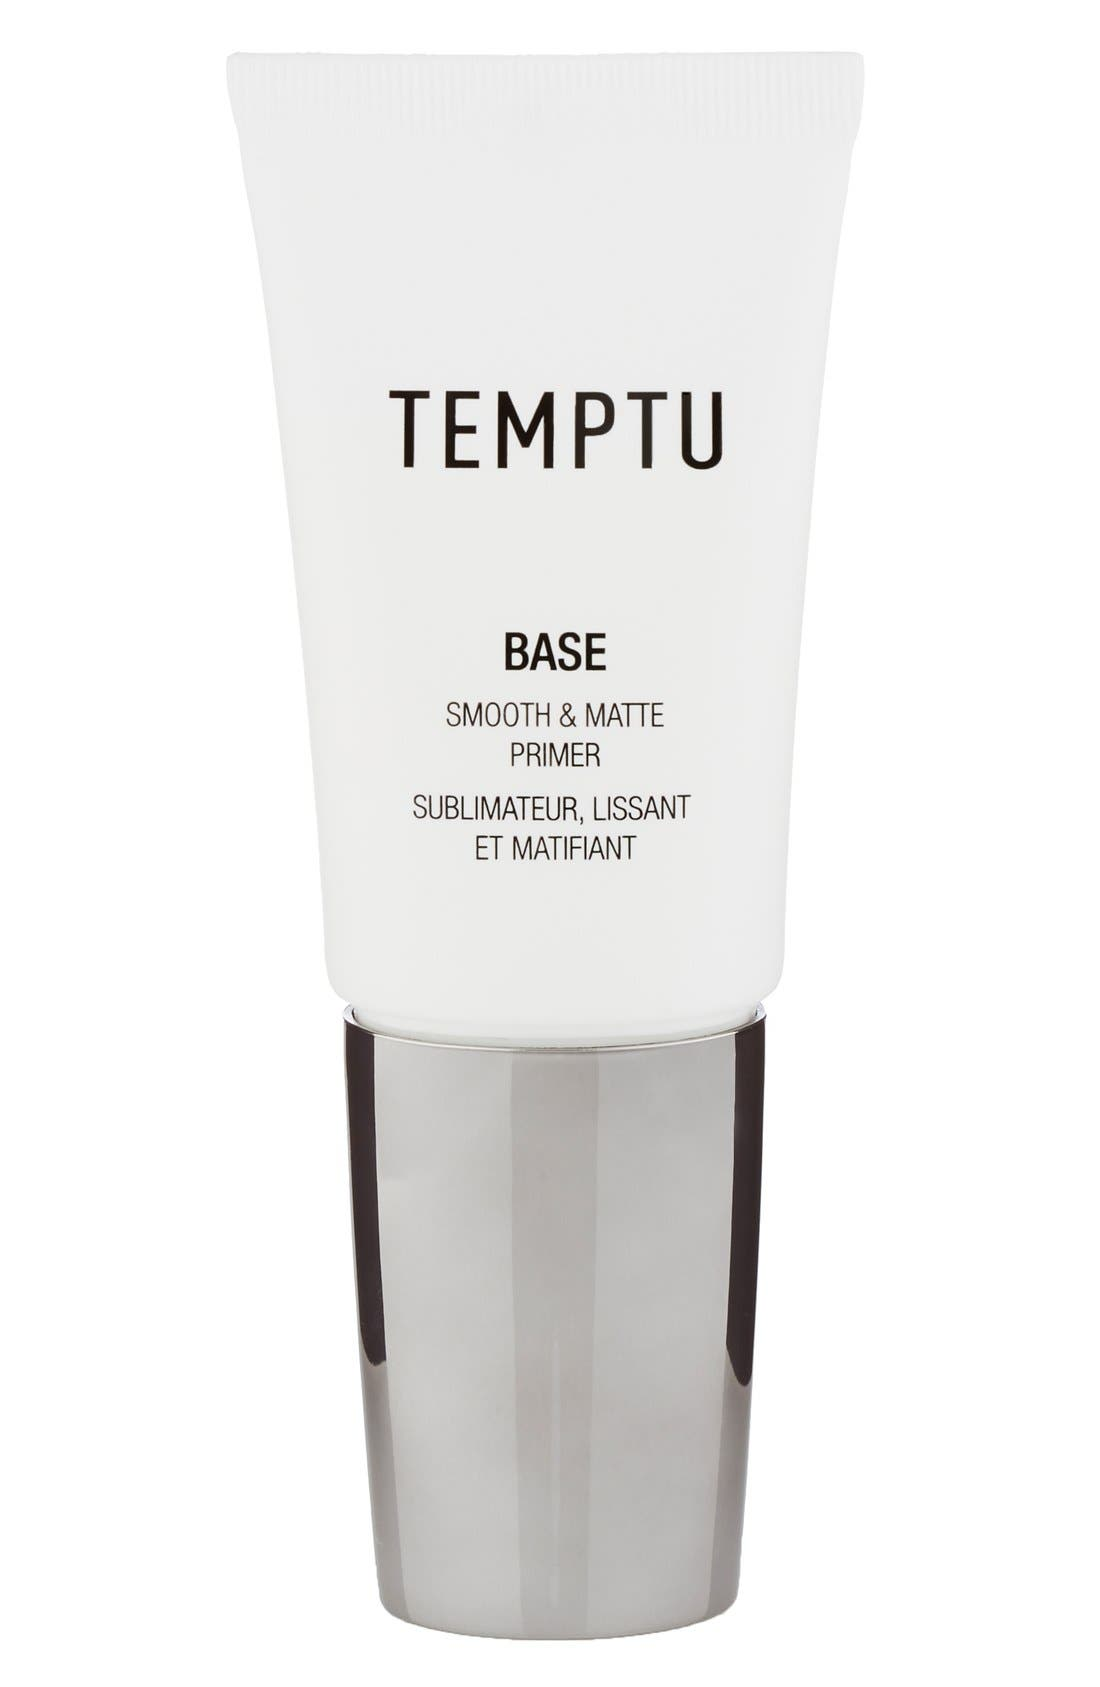 TEMPTU 'Base' Smooth & Matte Primer